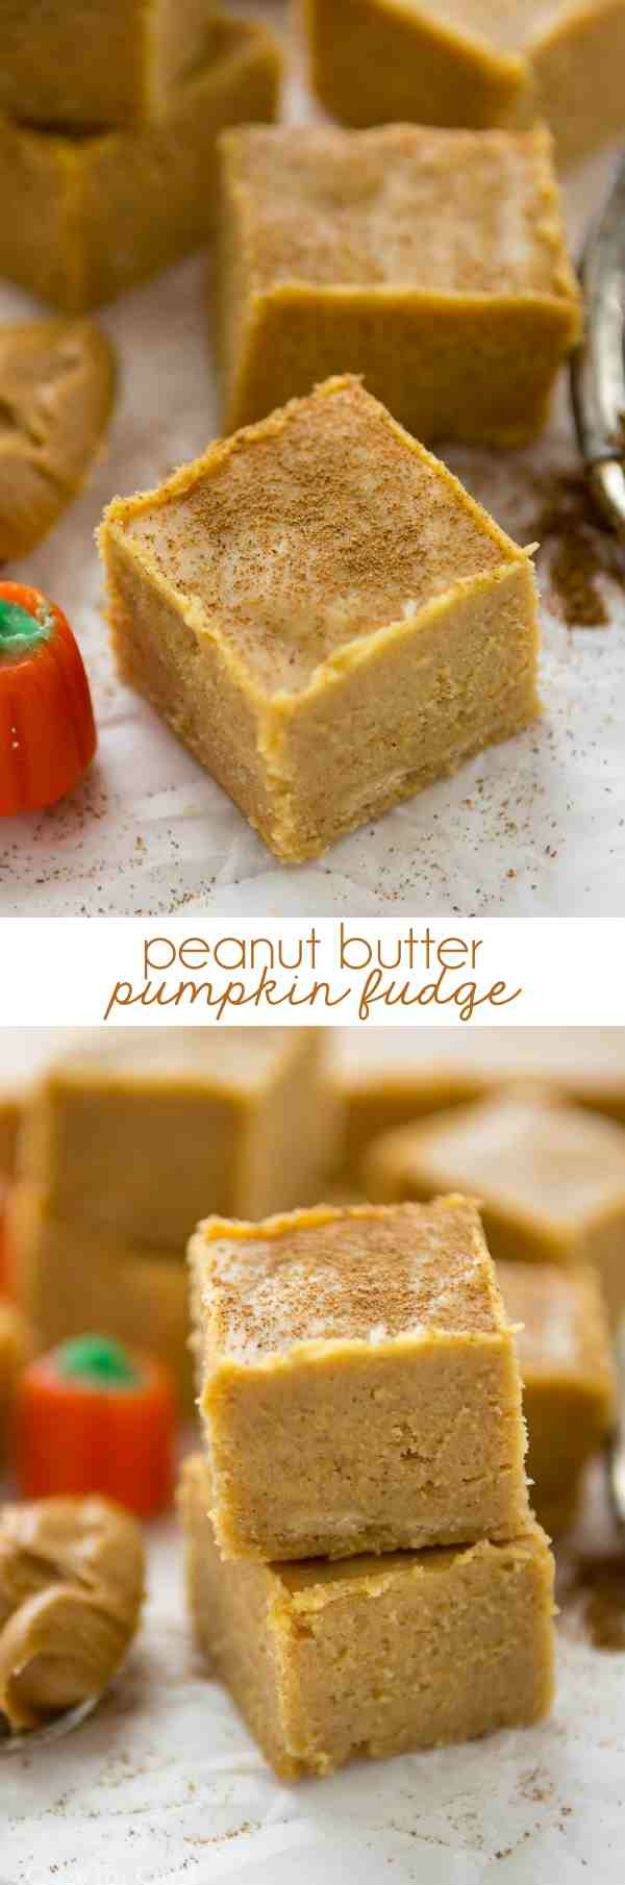 17 best images about fall on pinterest treat bags for Easy peanut butter dessert recipes